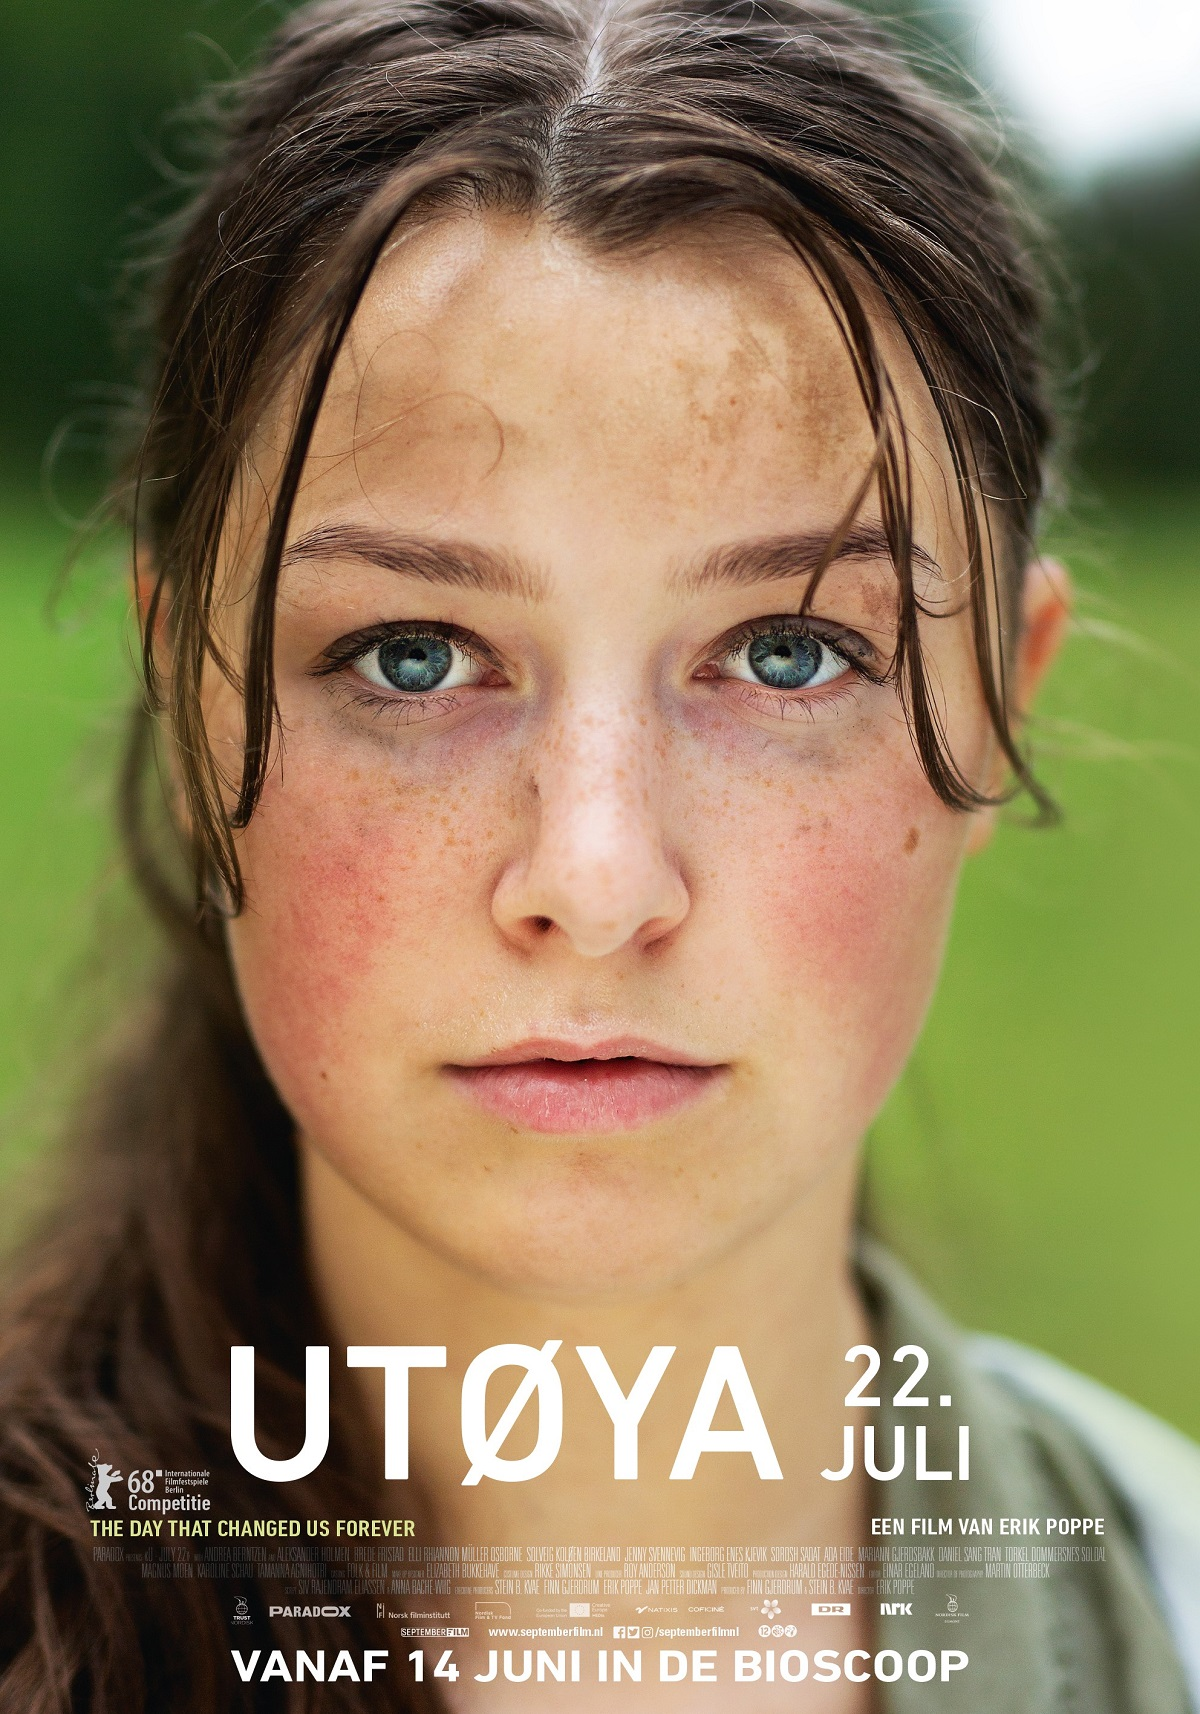 Film Utoya 22 july